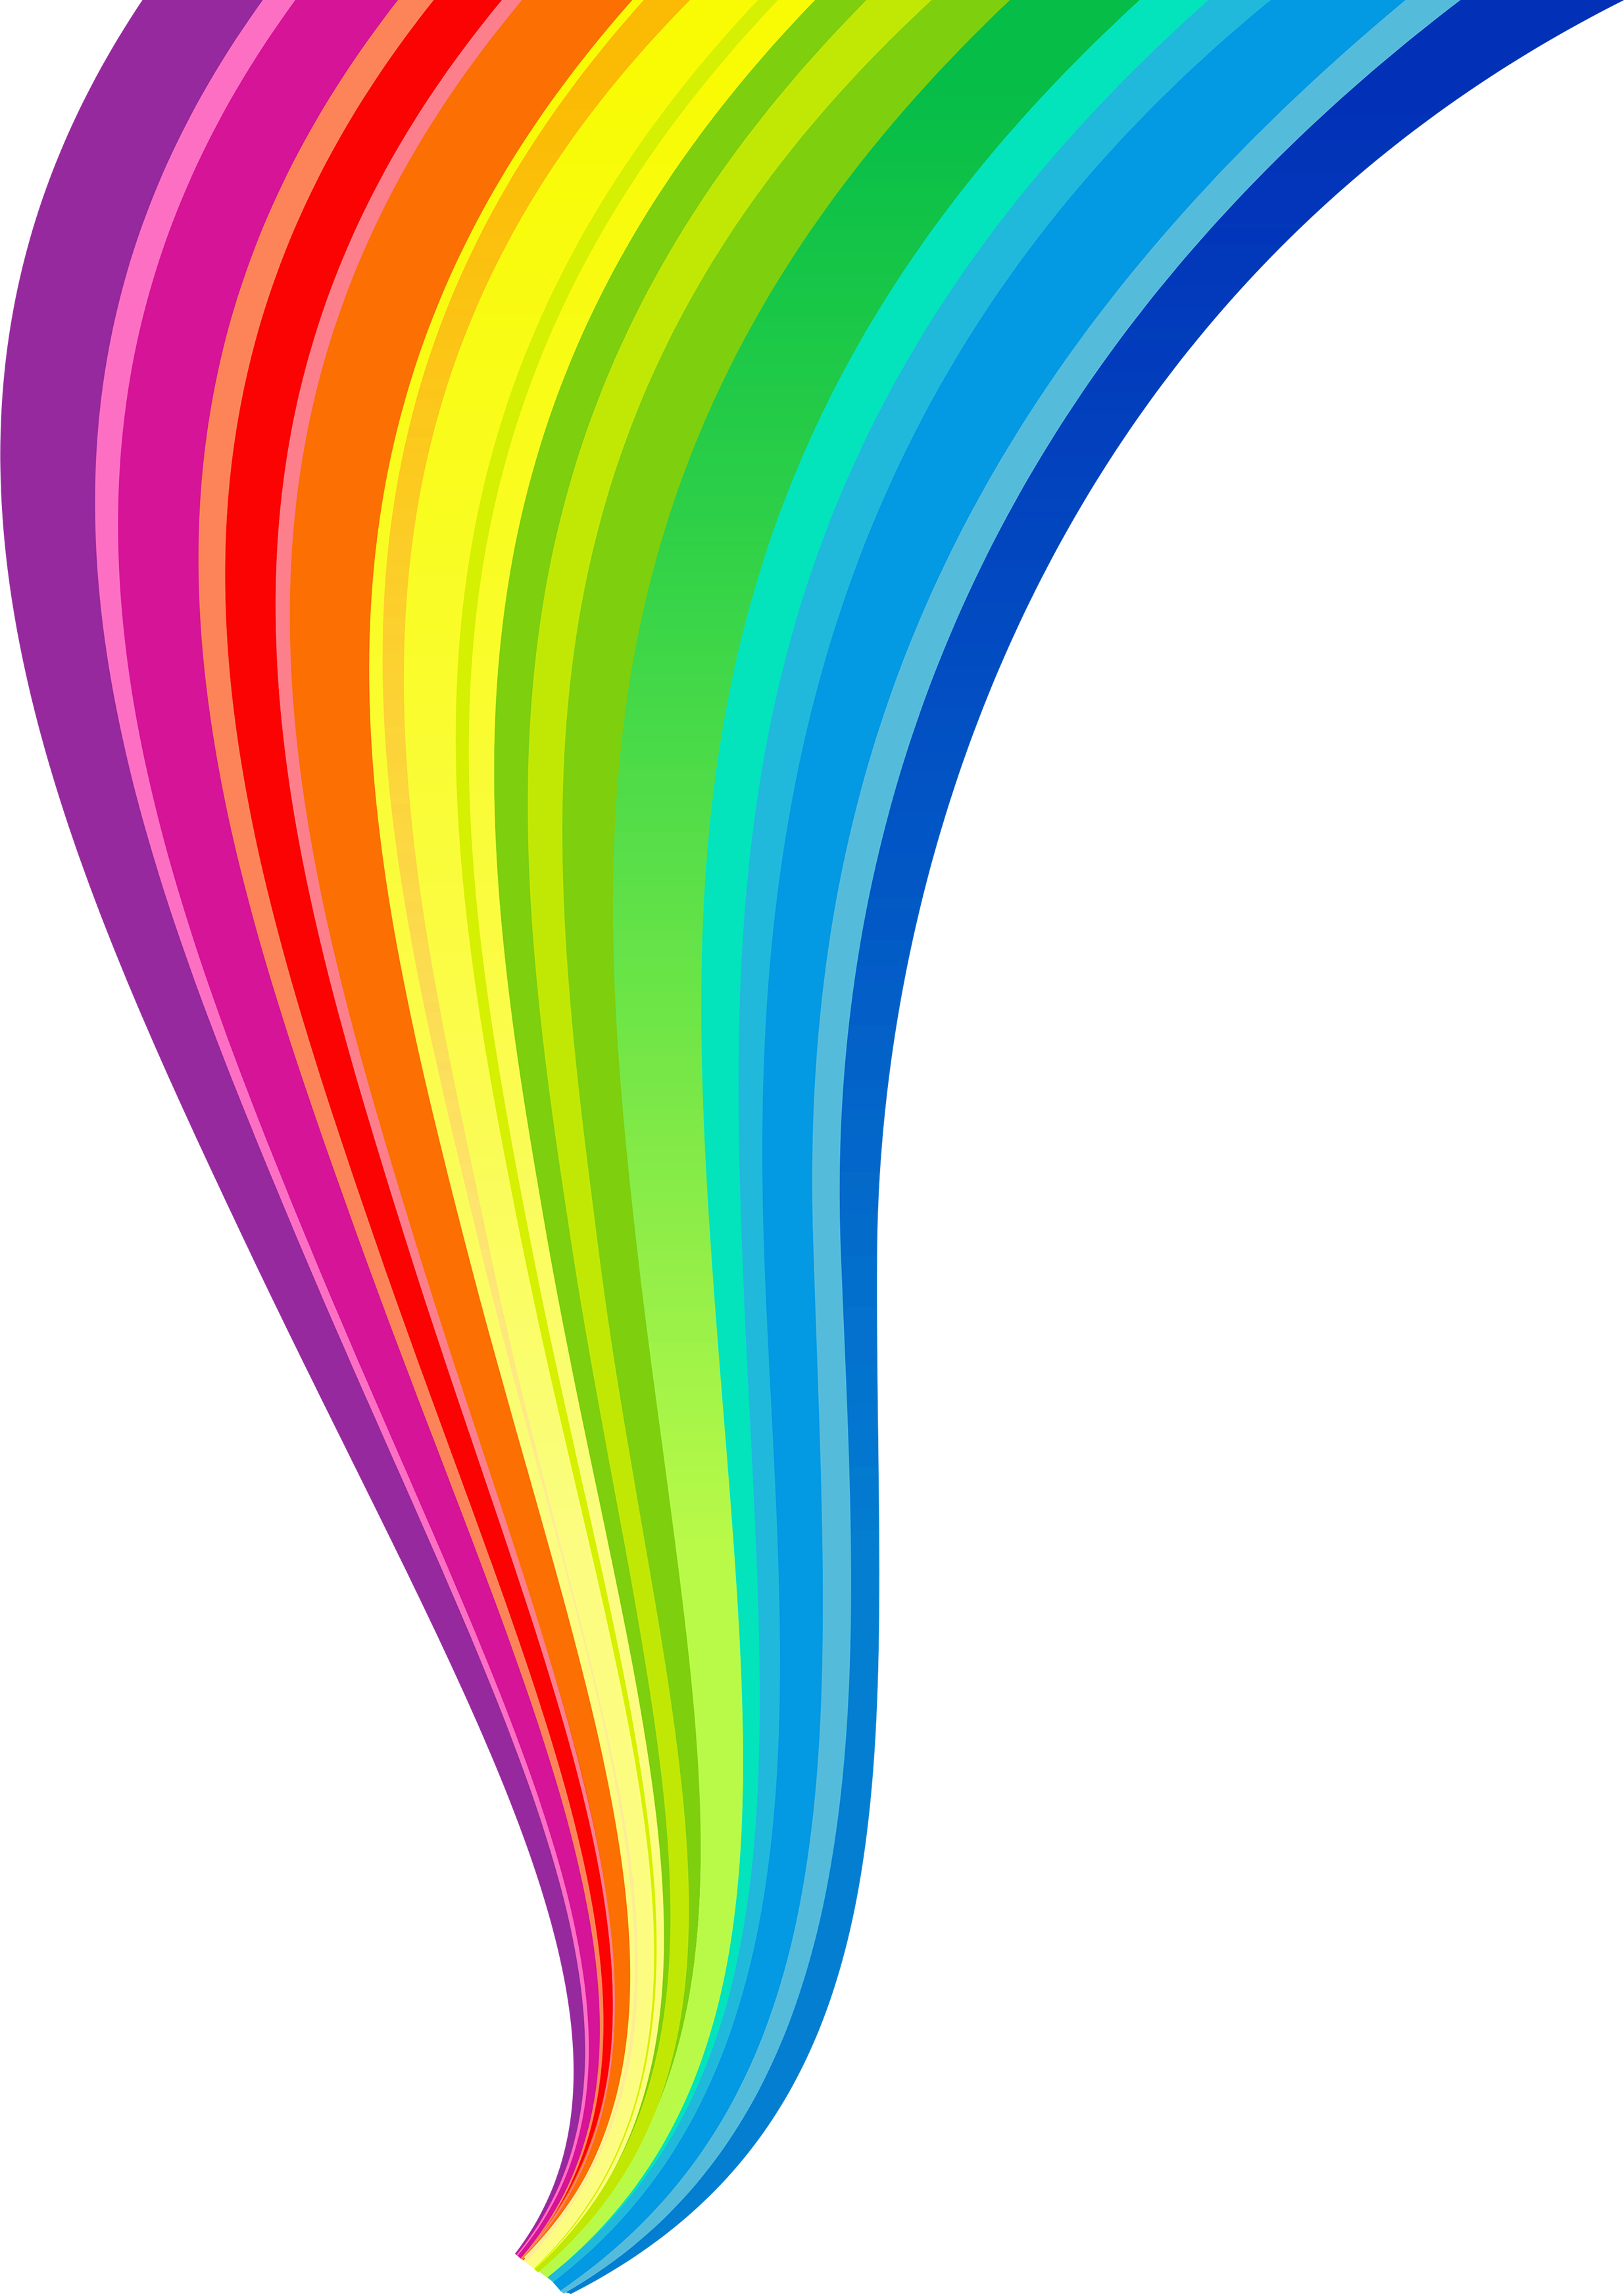 Rainbow line png. Images free download random